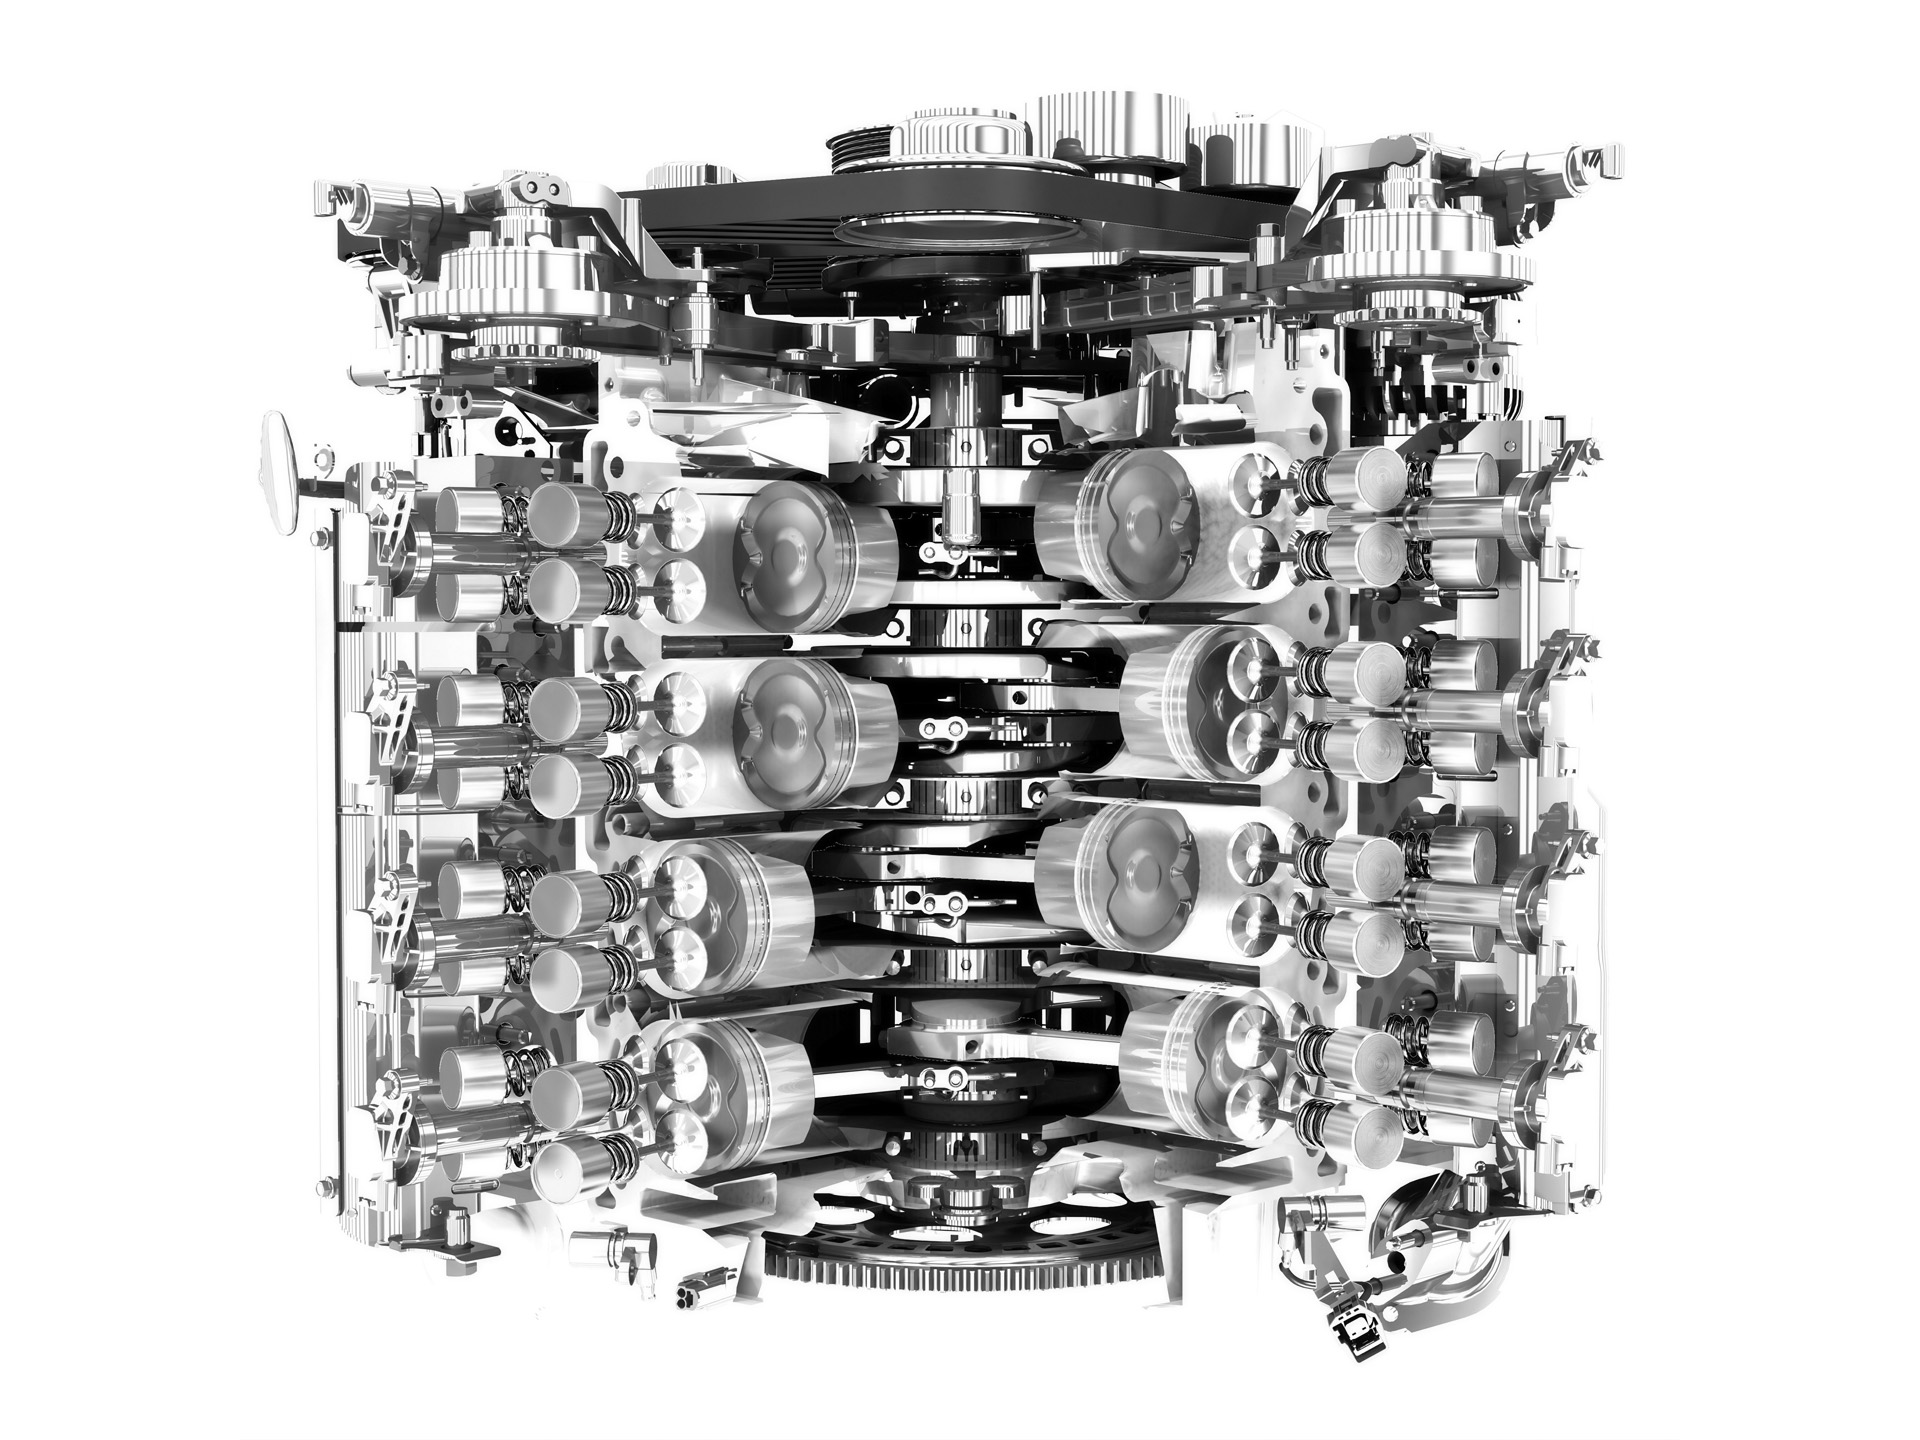 Sample P2852 Engine